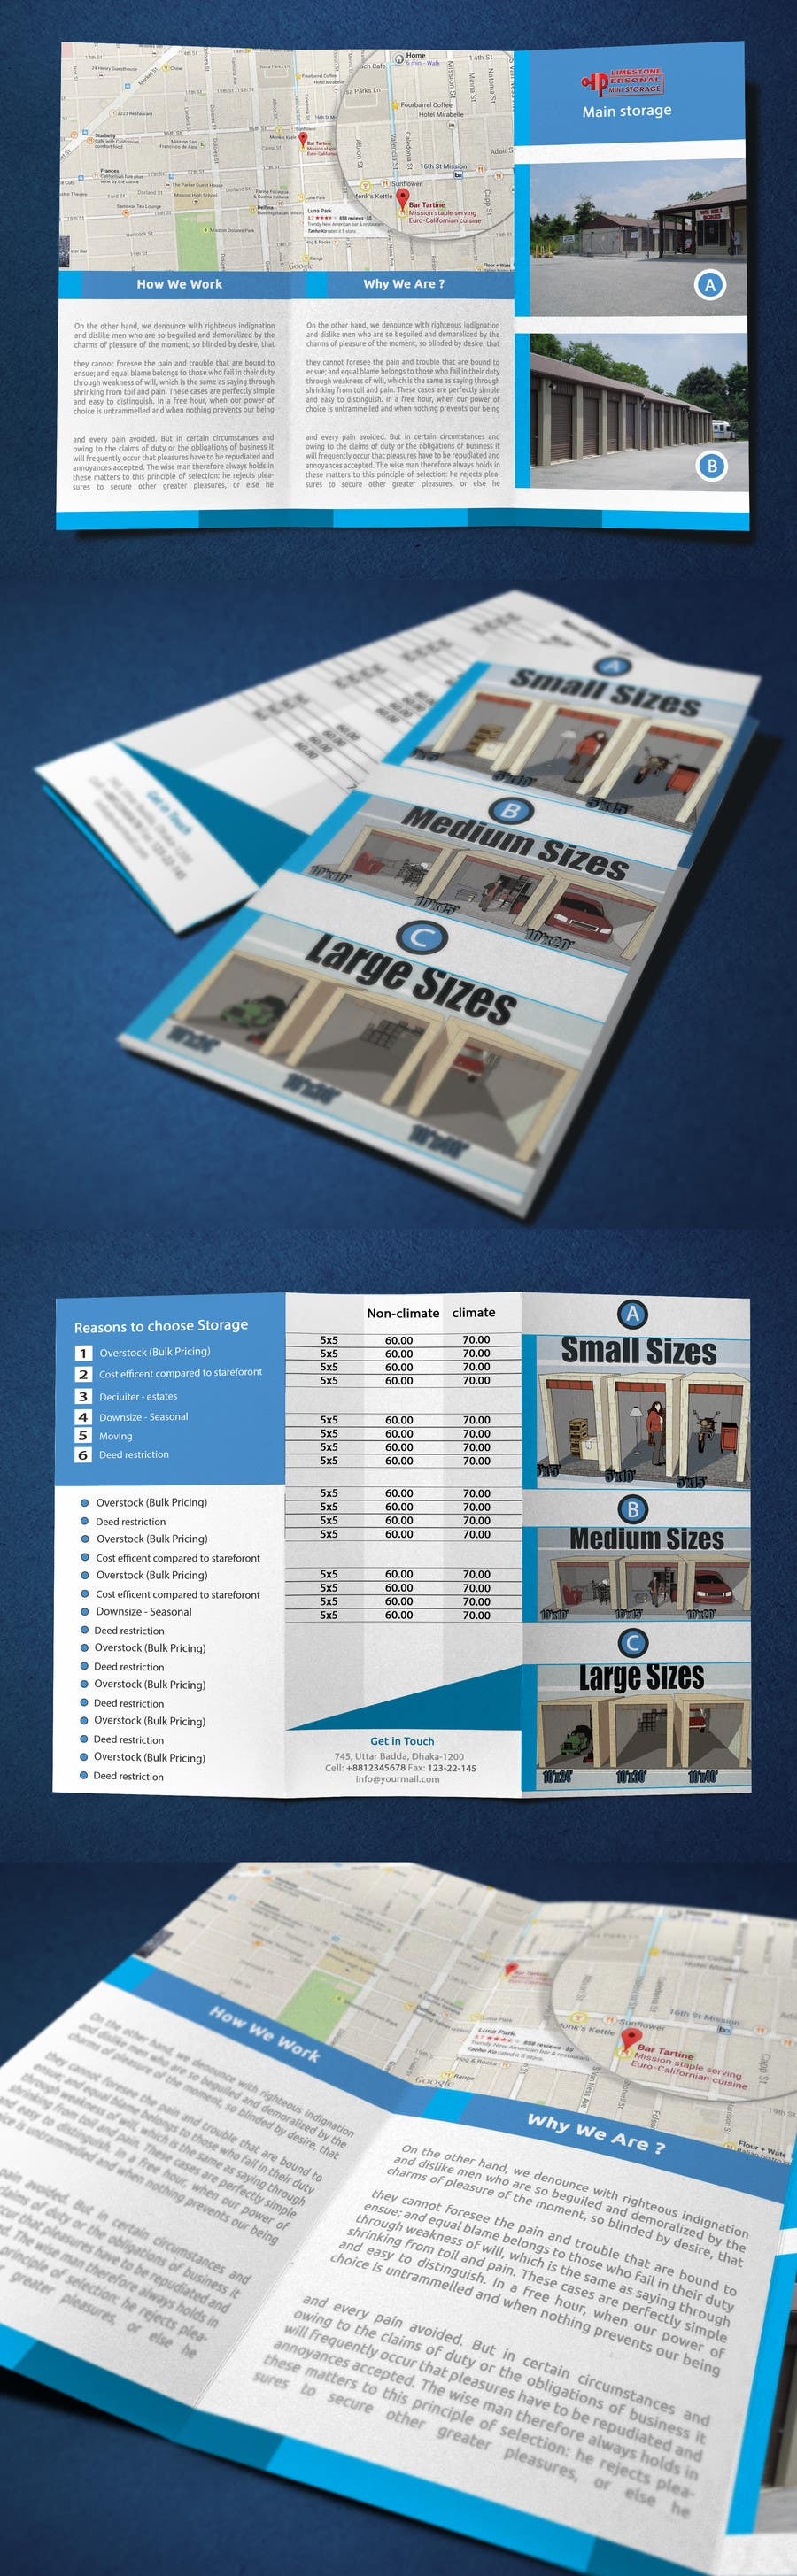 Contest Entry #                                        1                                      for                                         Design a Tr-Fold Brochure for Storage Company